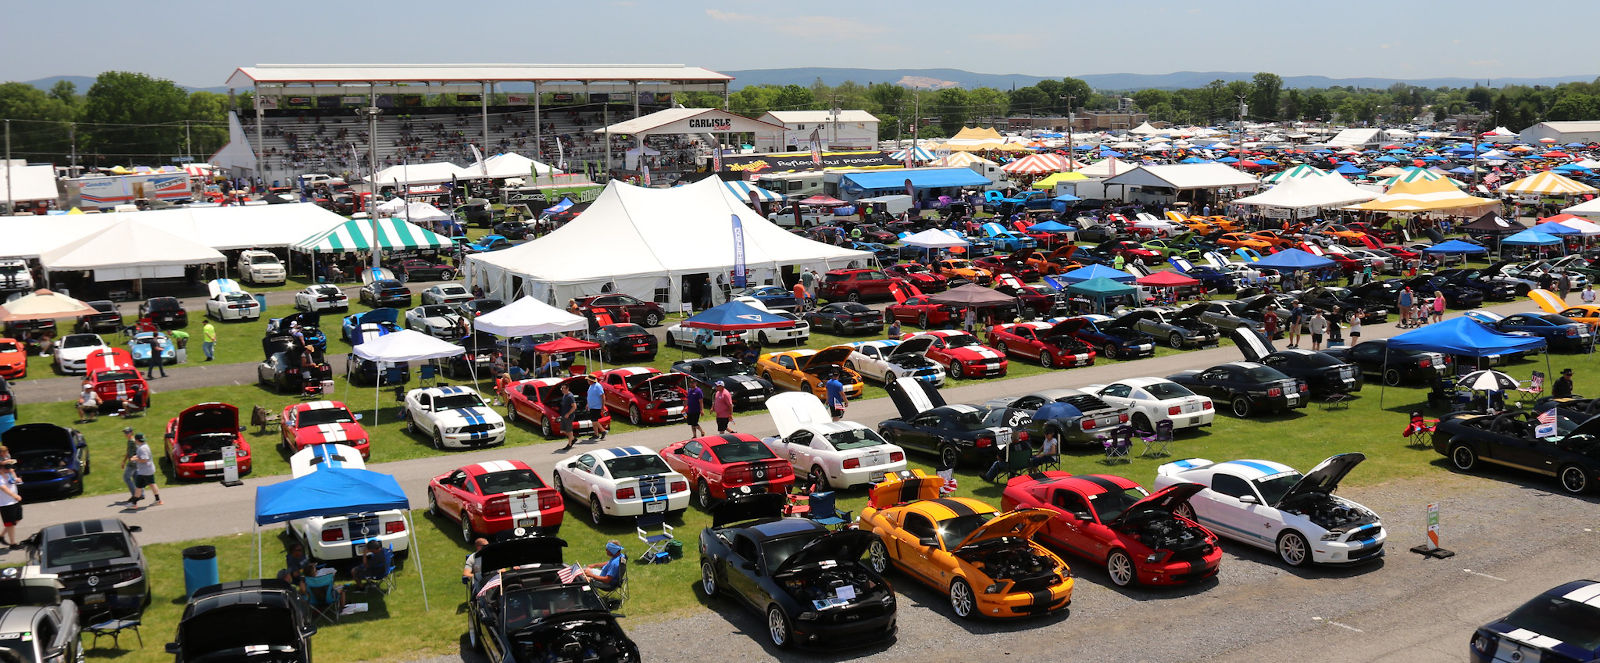 Record-Breaking Fun at the Carlisle Ford Nationals